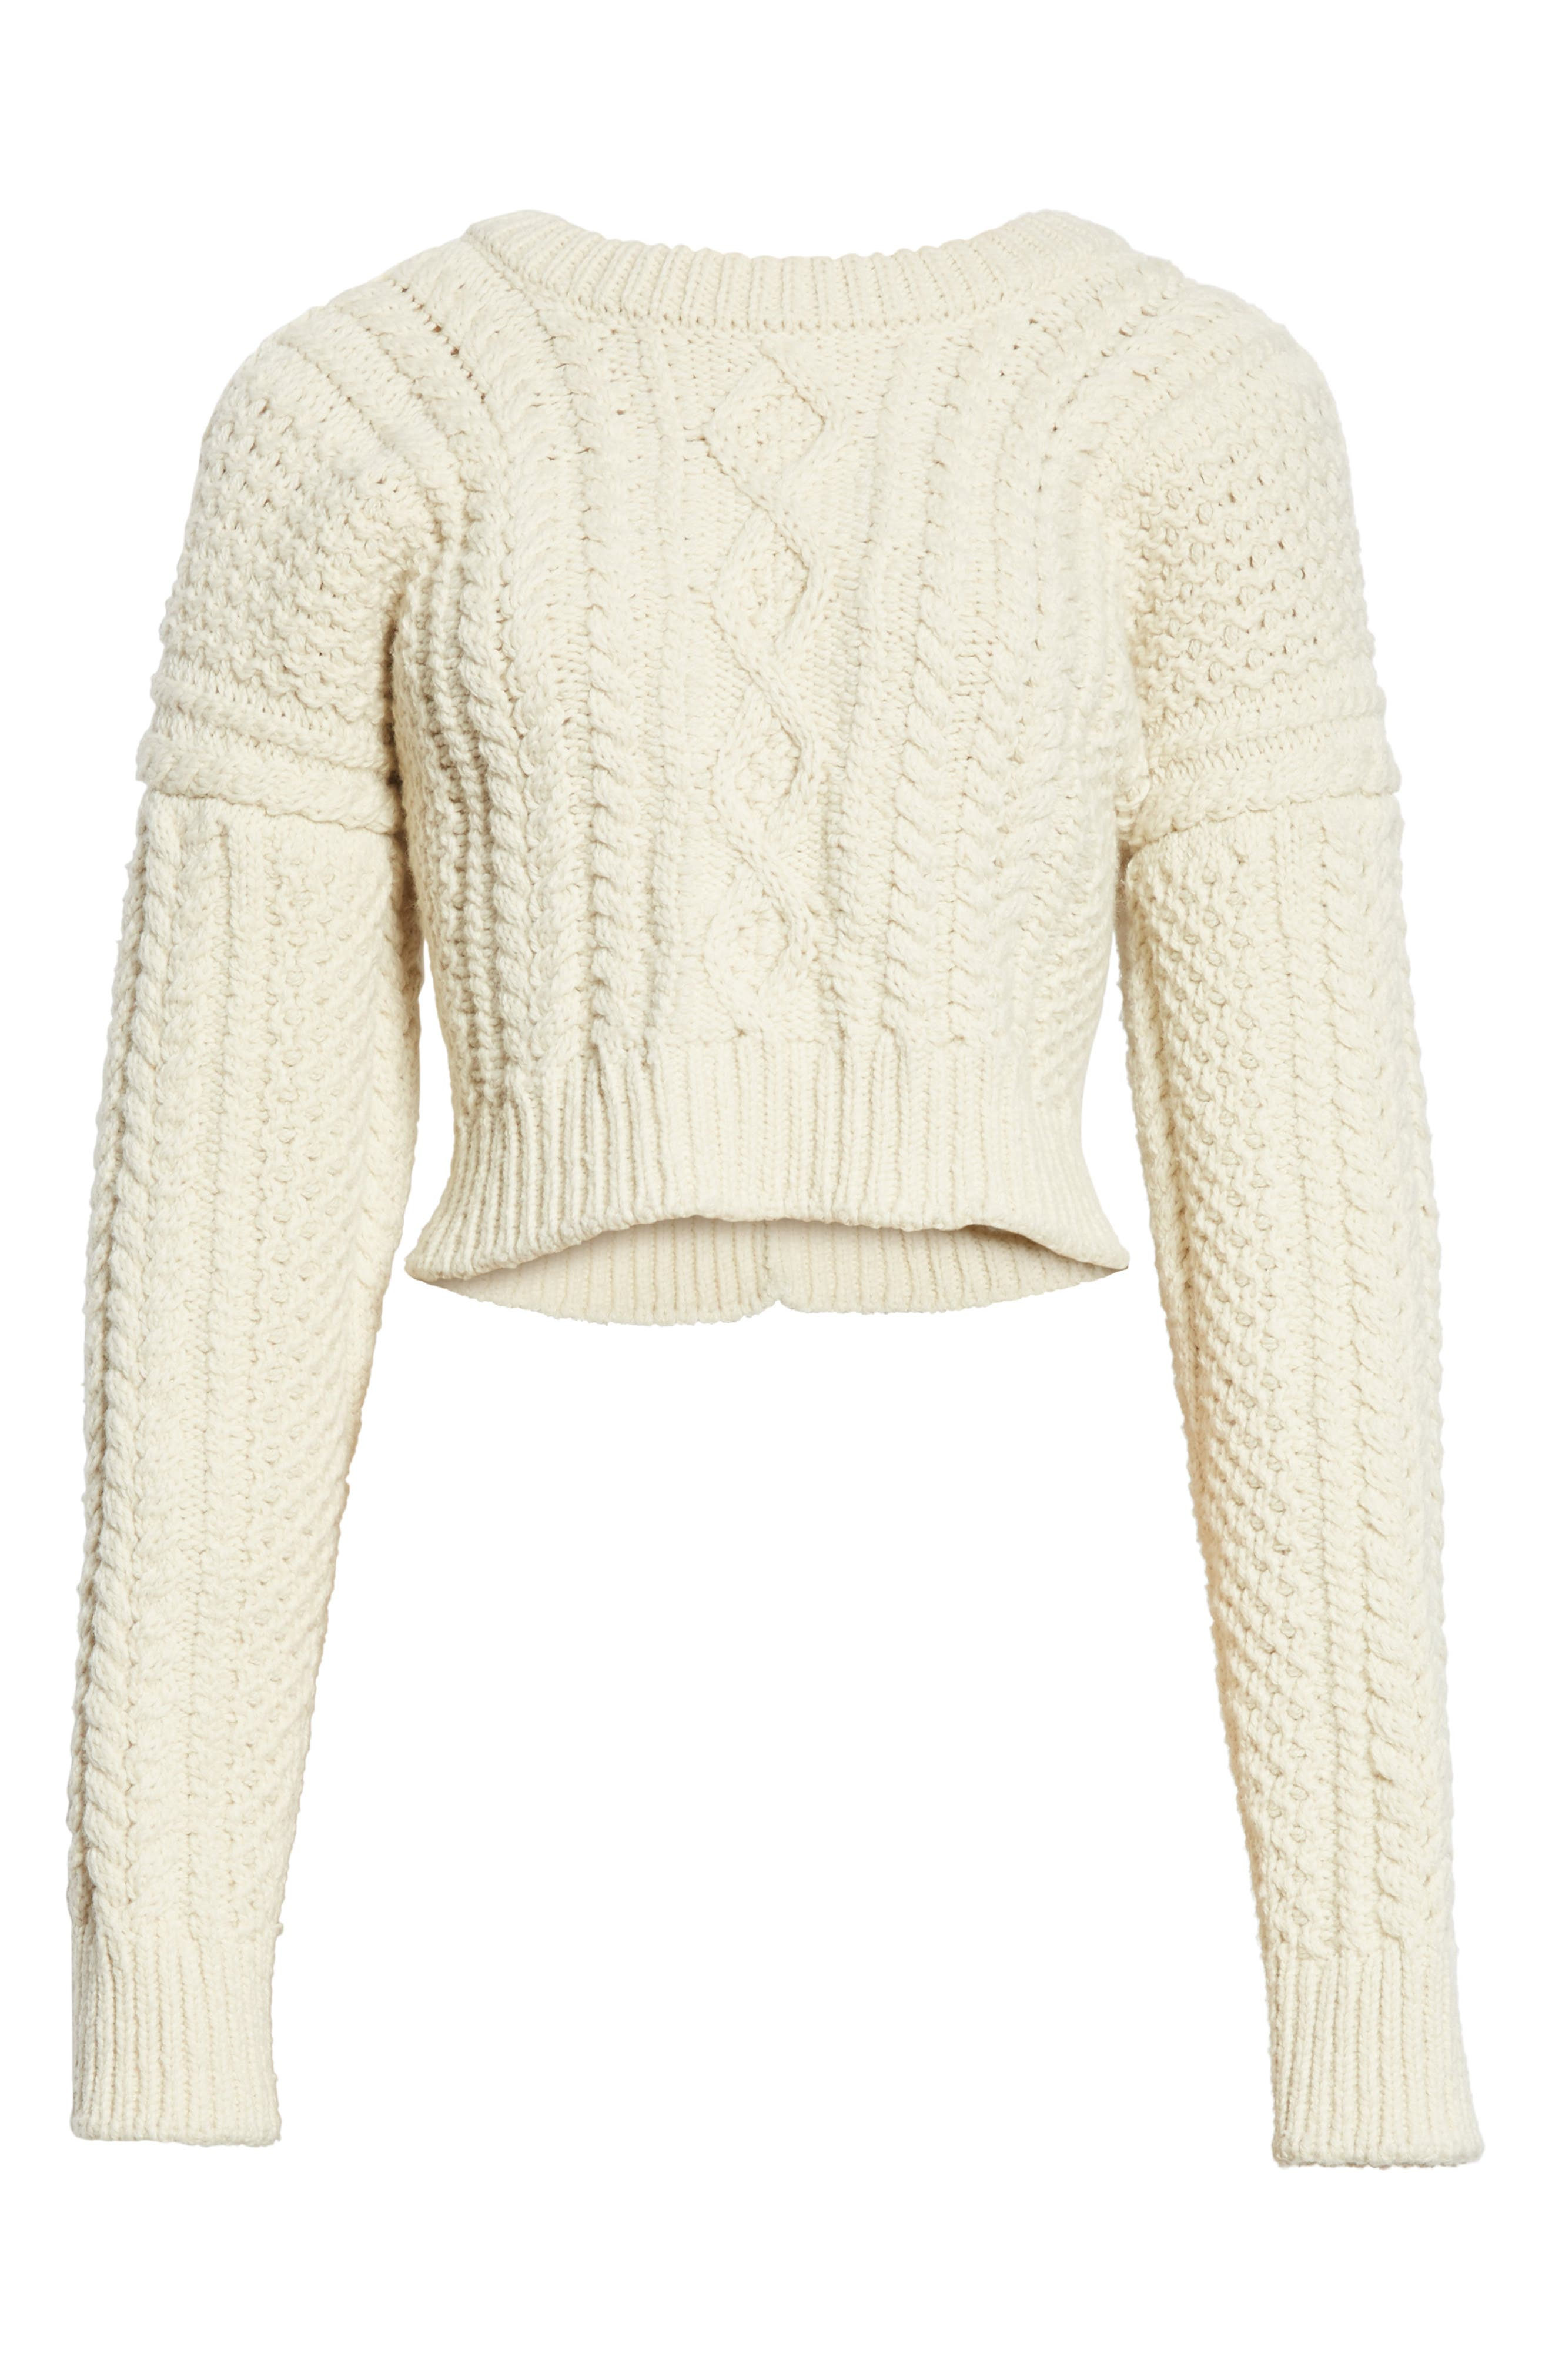 Back Strap Cable Knit Crop Sweater,                             Alternate thumbnail 6, color,                             900